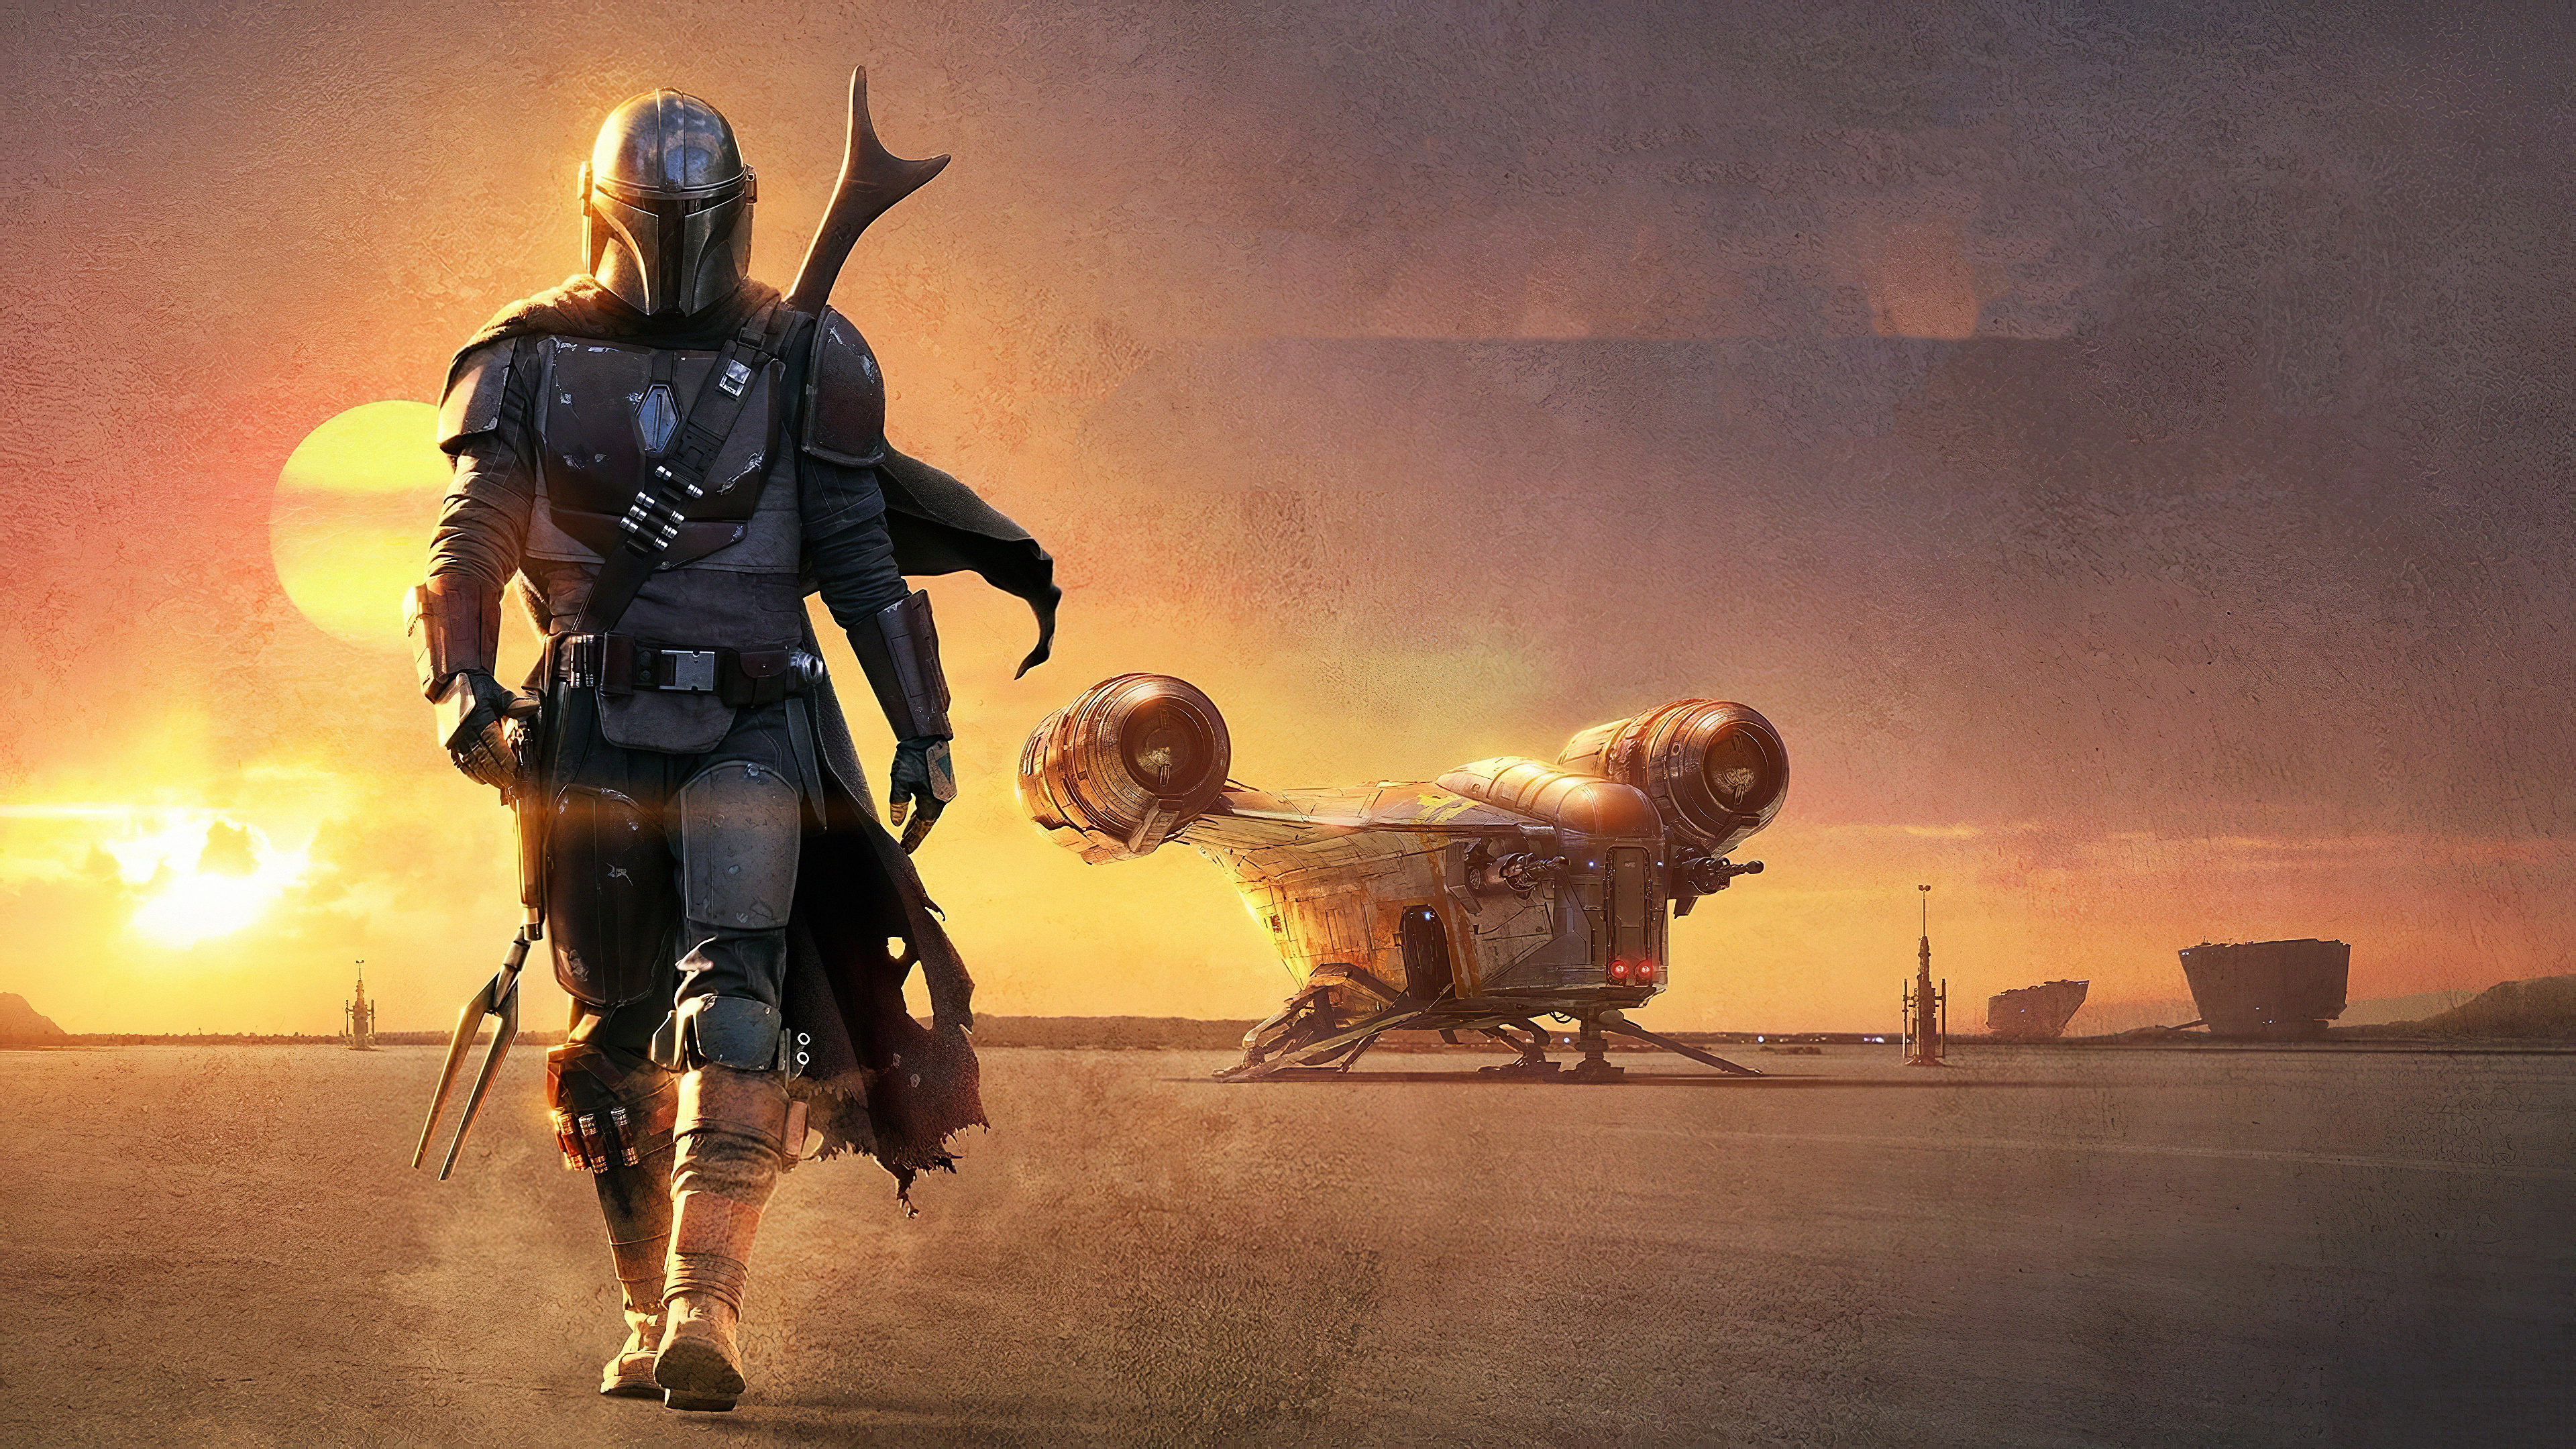 Star Wars The Mandalorian 3235162 Hd Wallpaper Backgrounds Download